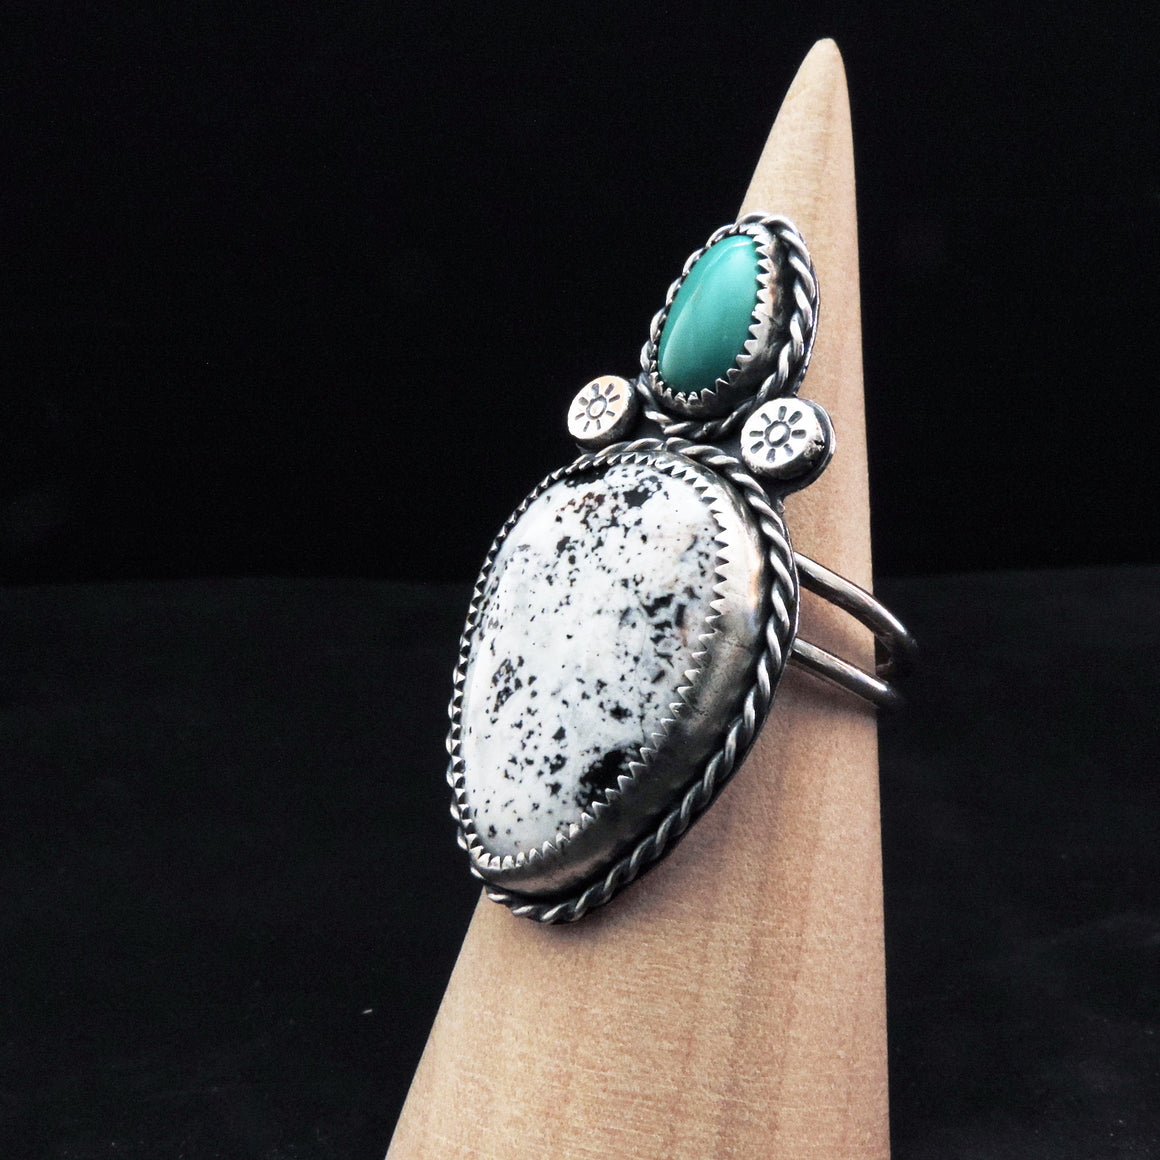 White Buffalo and Turquoise Ring - Size 8